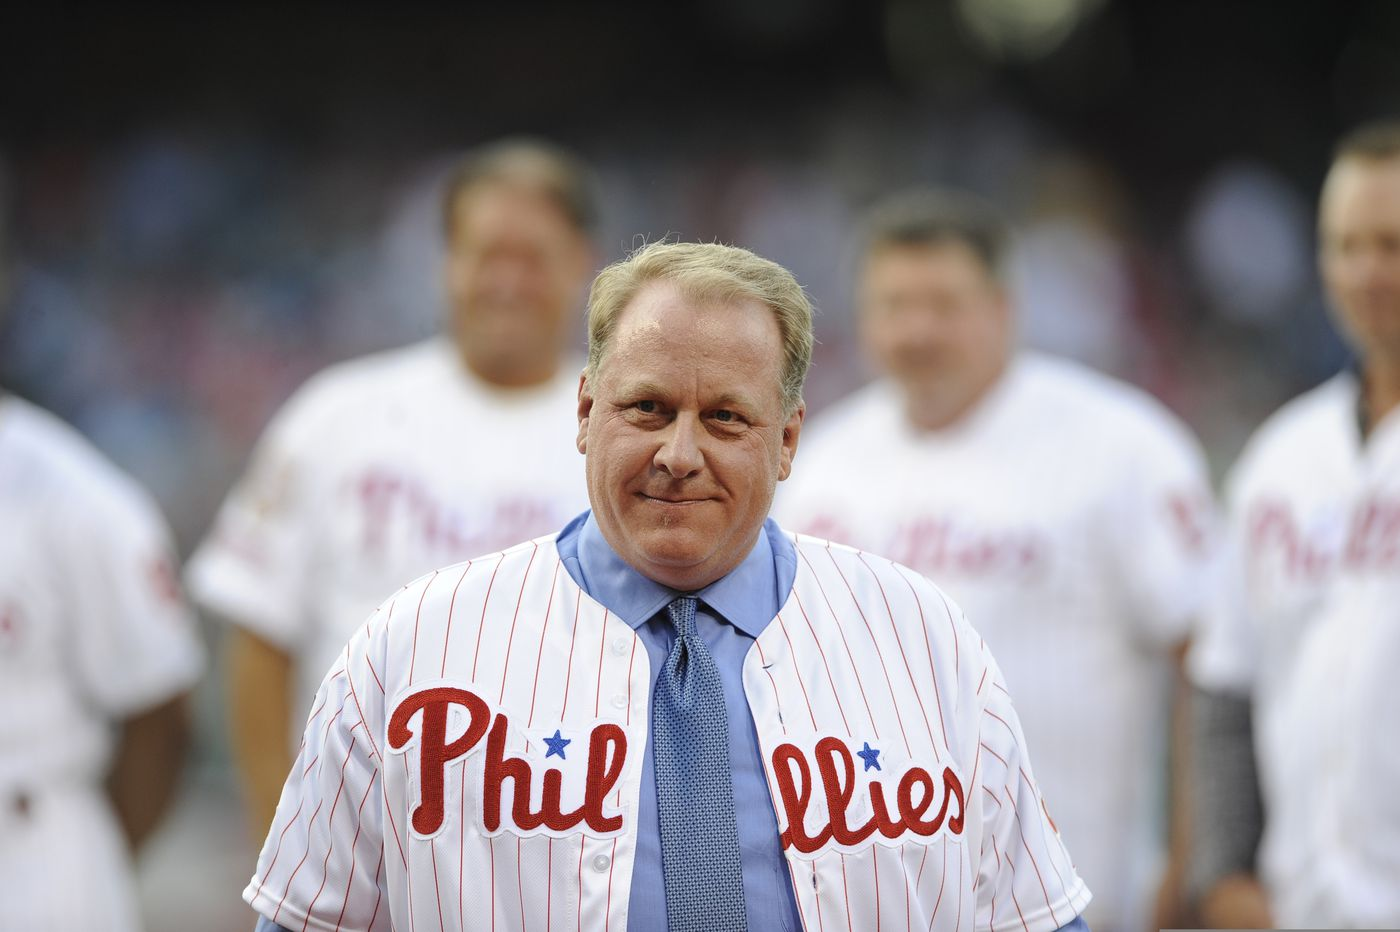 'President Elect Curt Schilling' could finally go into the Hall of Fame in 2021 | Extra Innings